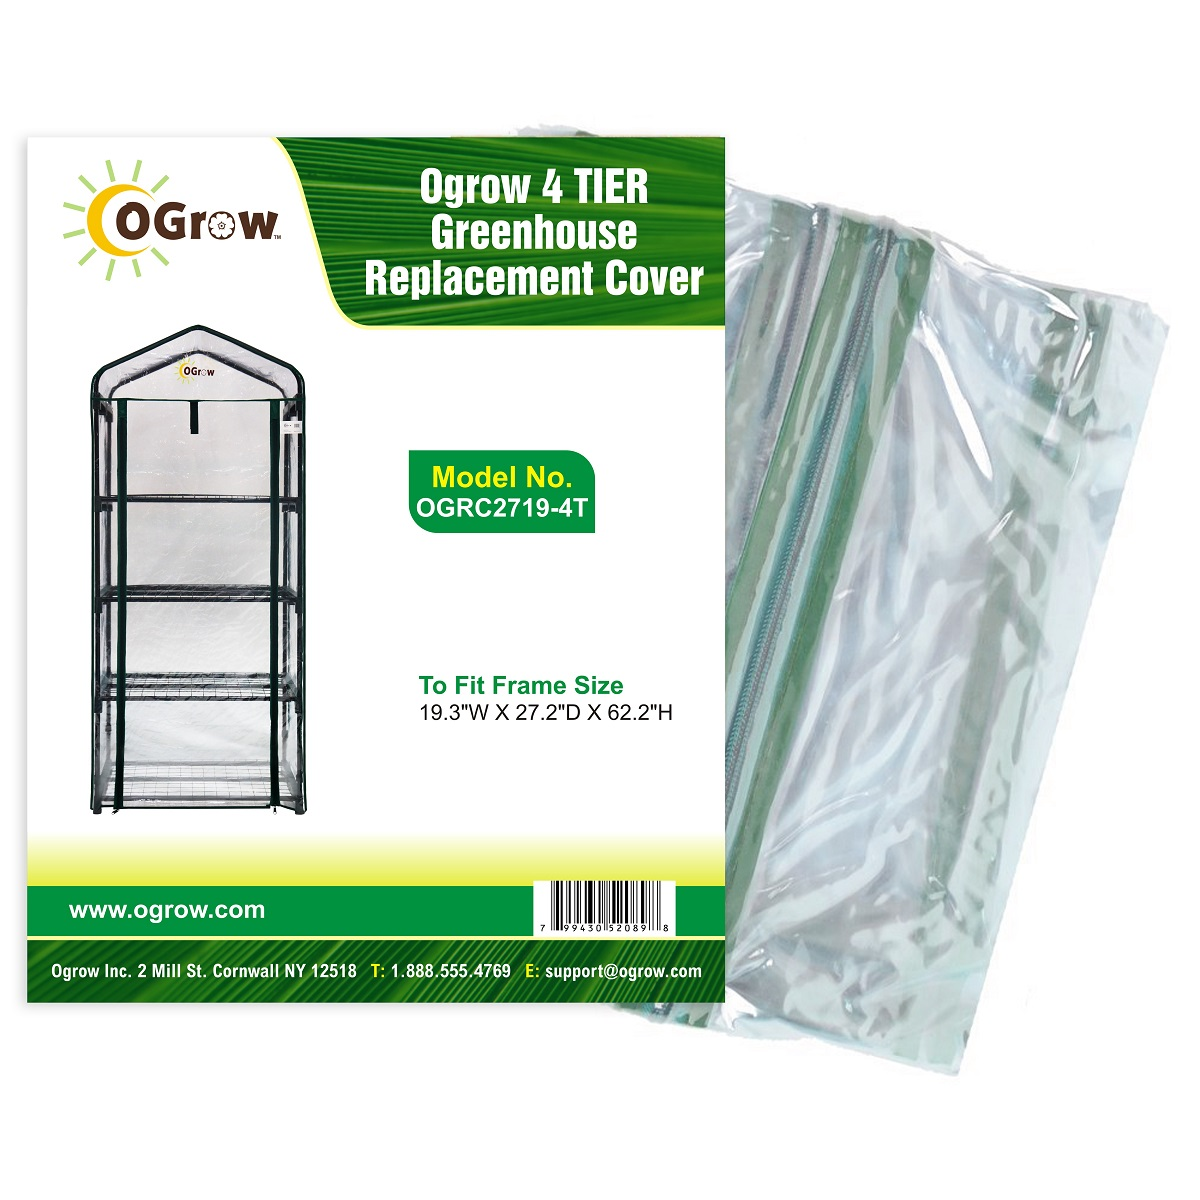 "4 TIER Greenhouse Replacement Cover To Fit Frame Size 19.3""W X 27.2""D X 62.2""H by KSH Brands"